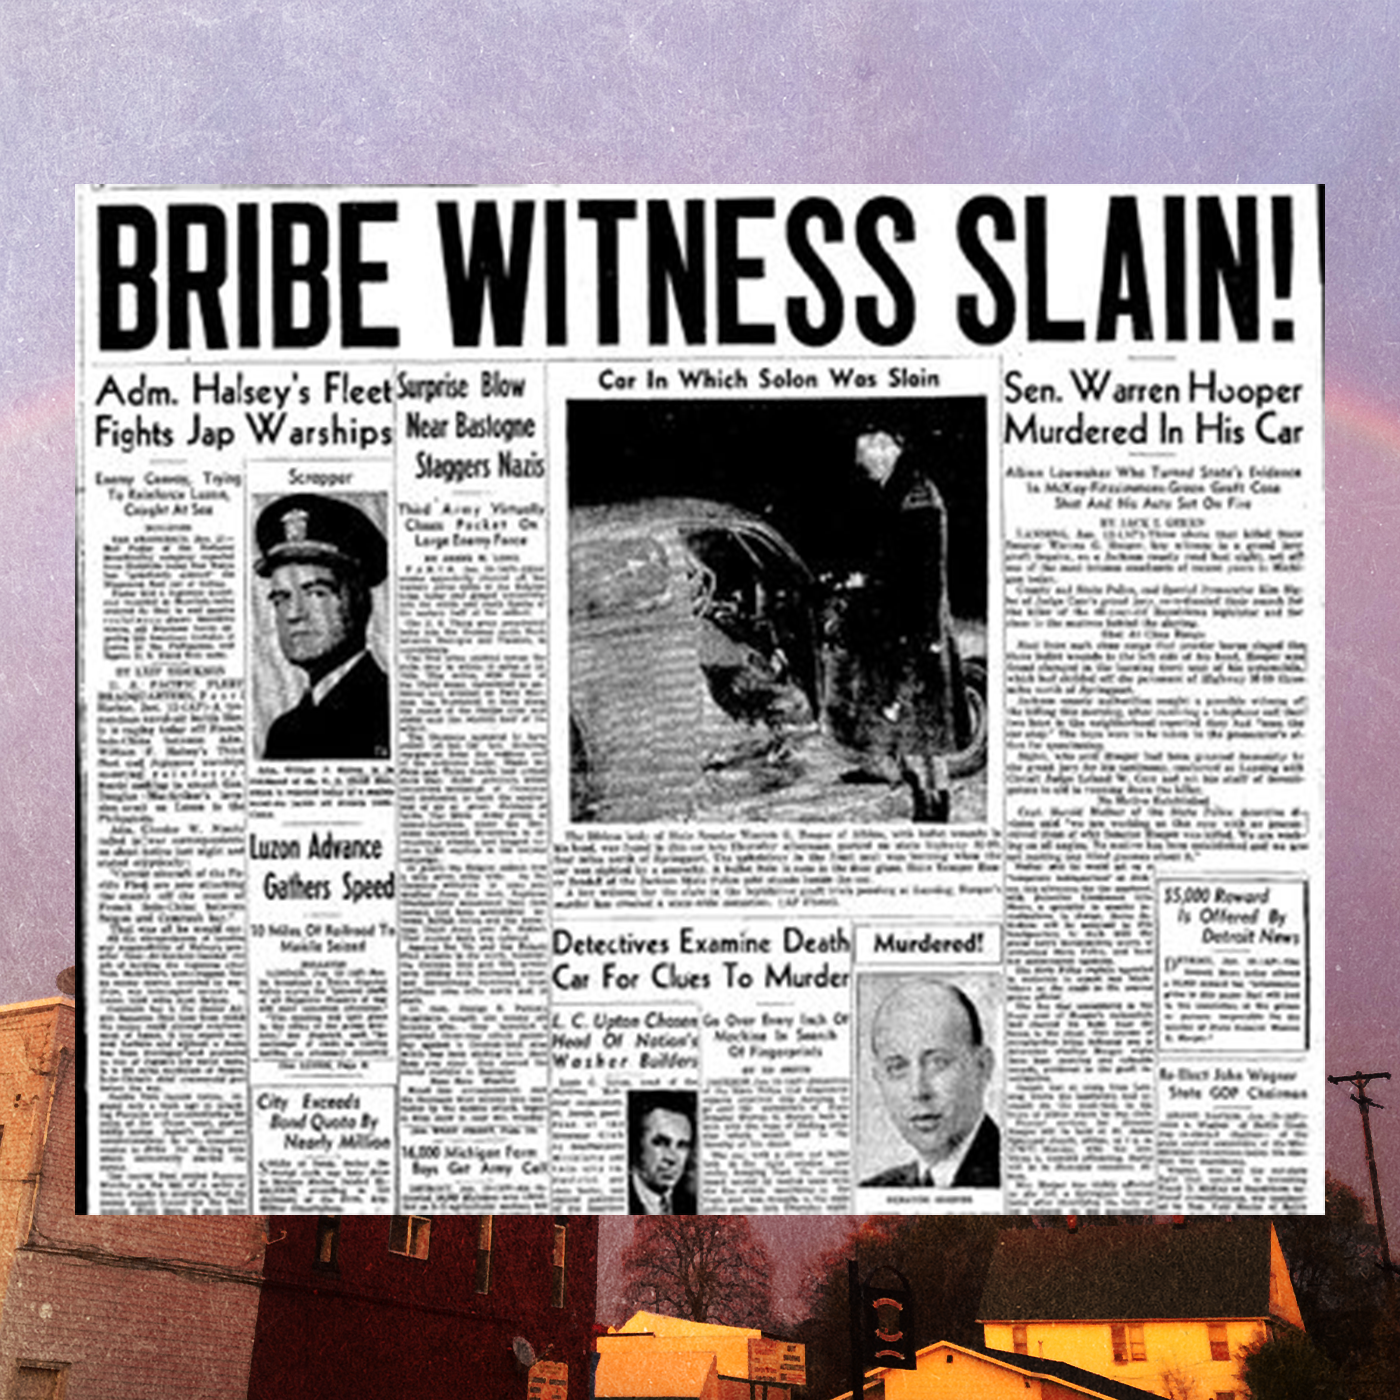 Front page reporting Hooper's assassination